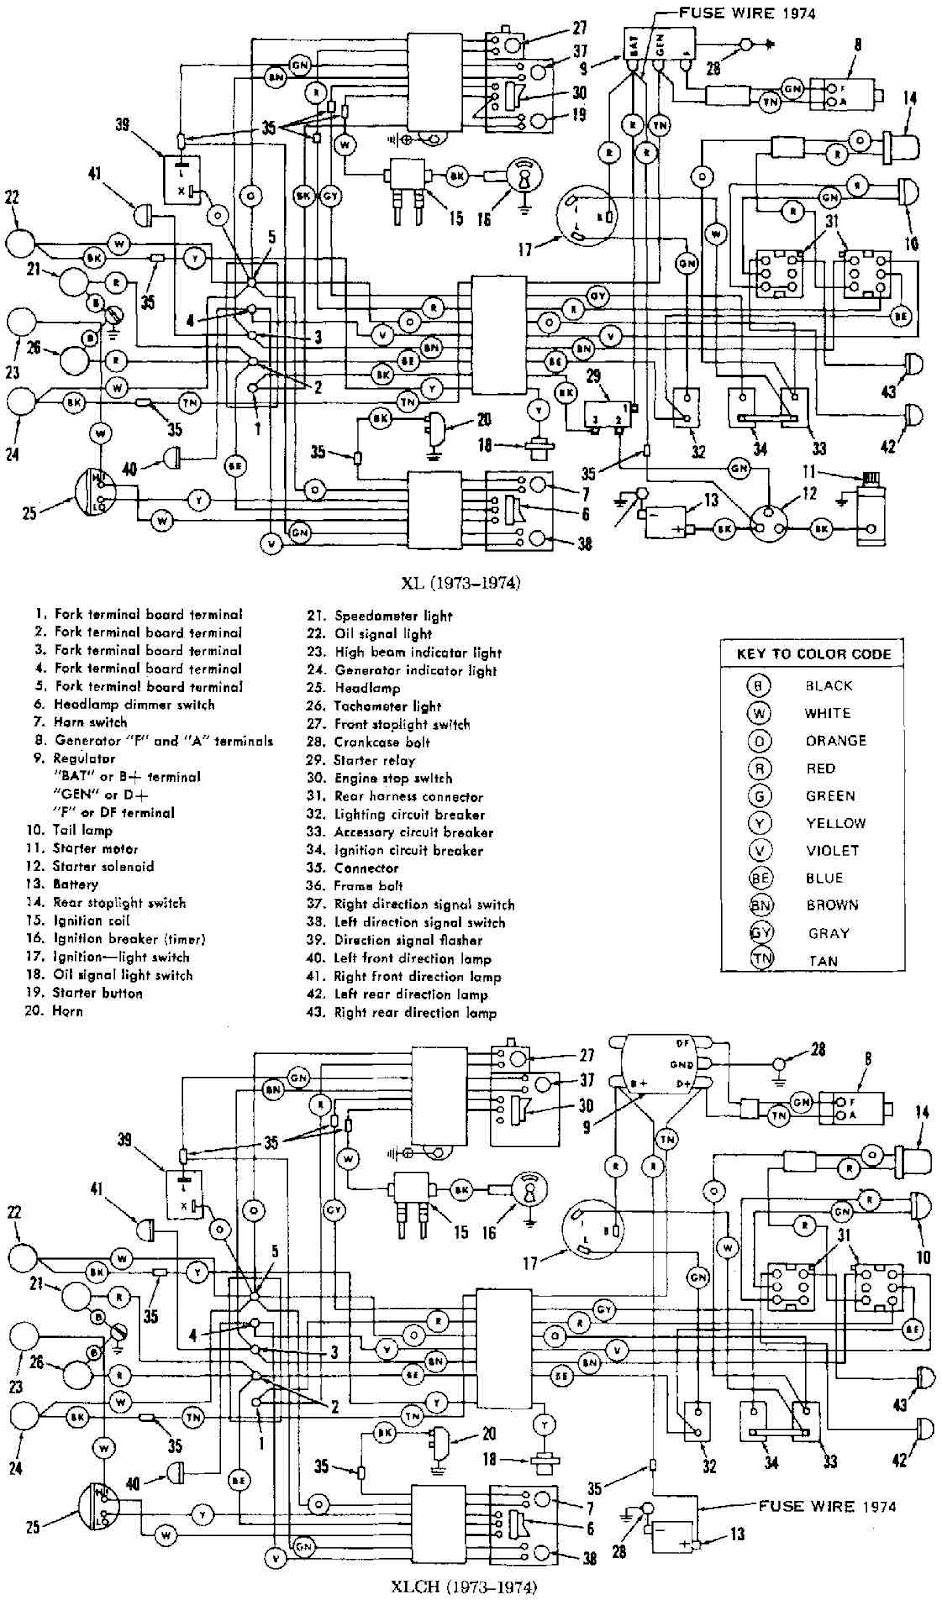 2013 Harley Davidson Stereo Wiring Diagram Free Download Relay Ultra Radio Beautiful Harmon Contemporary